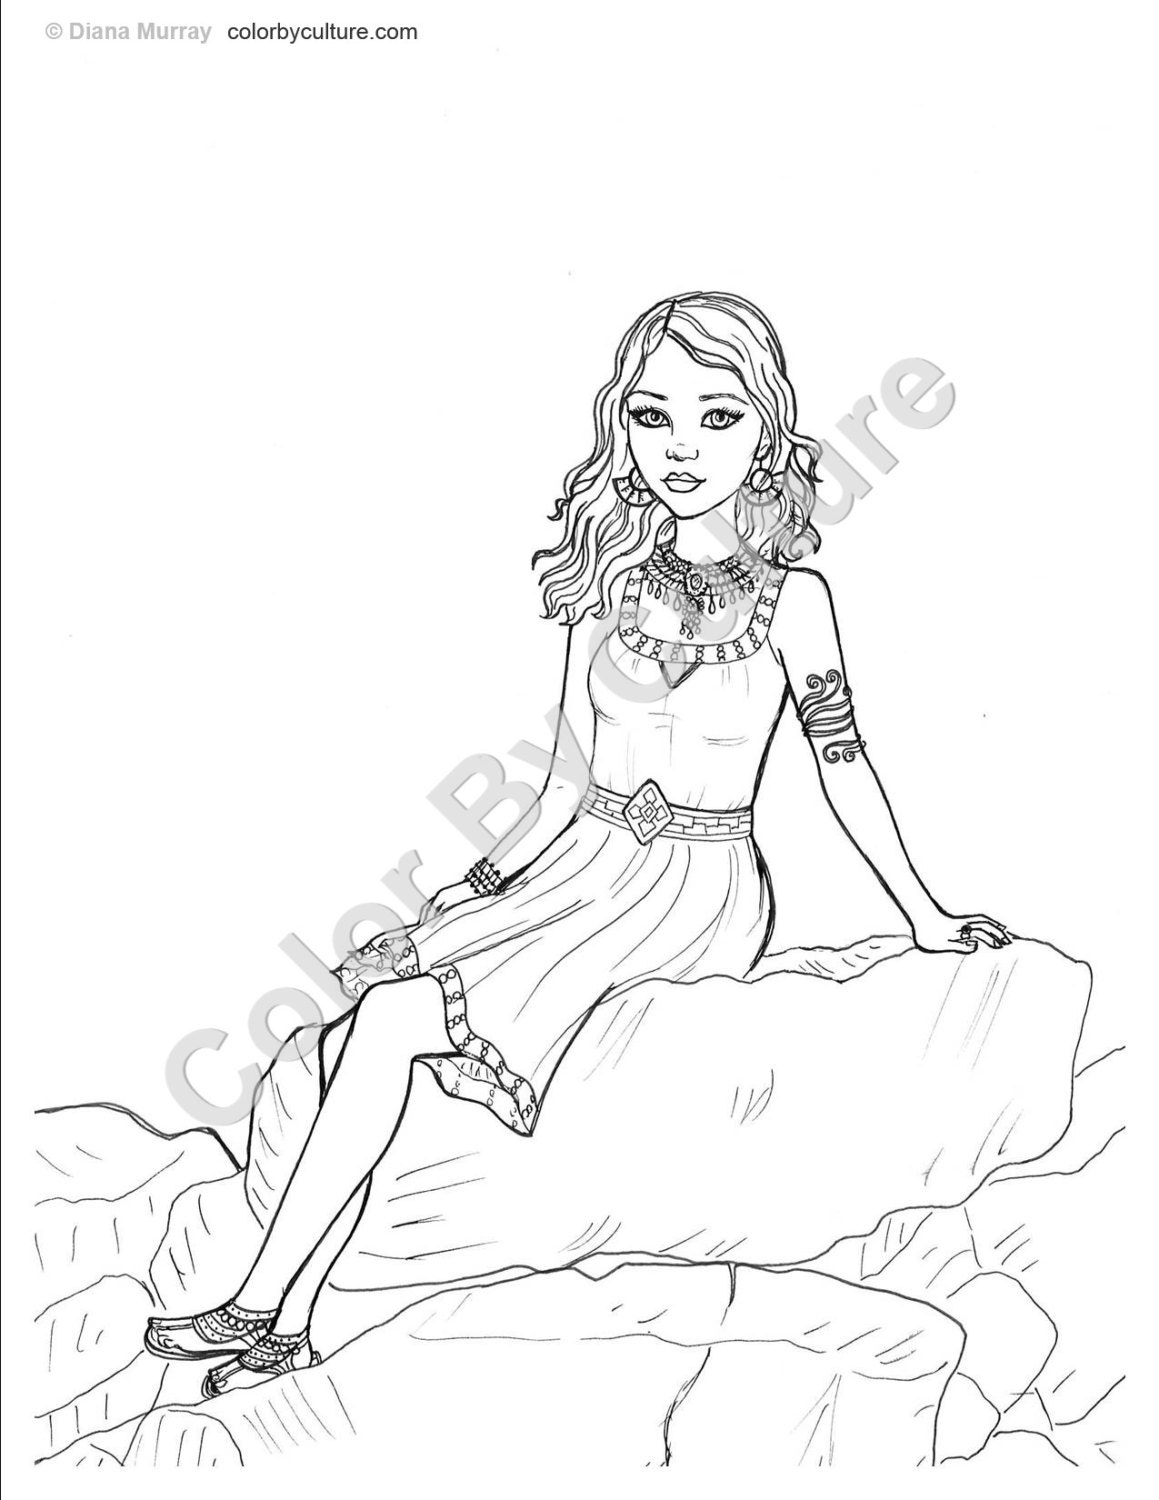 Coloring Pages Indian Girl Coloring Page indian girl coloring page eassume com fashion india etsy